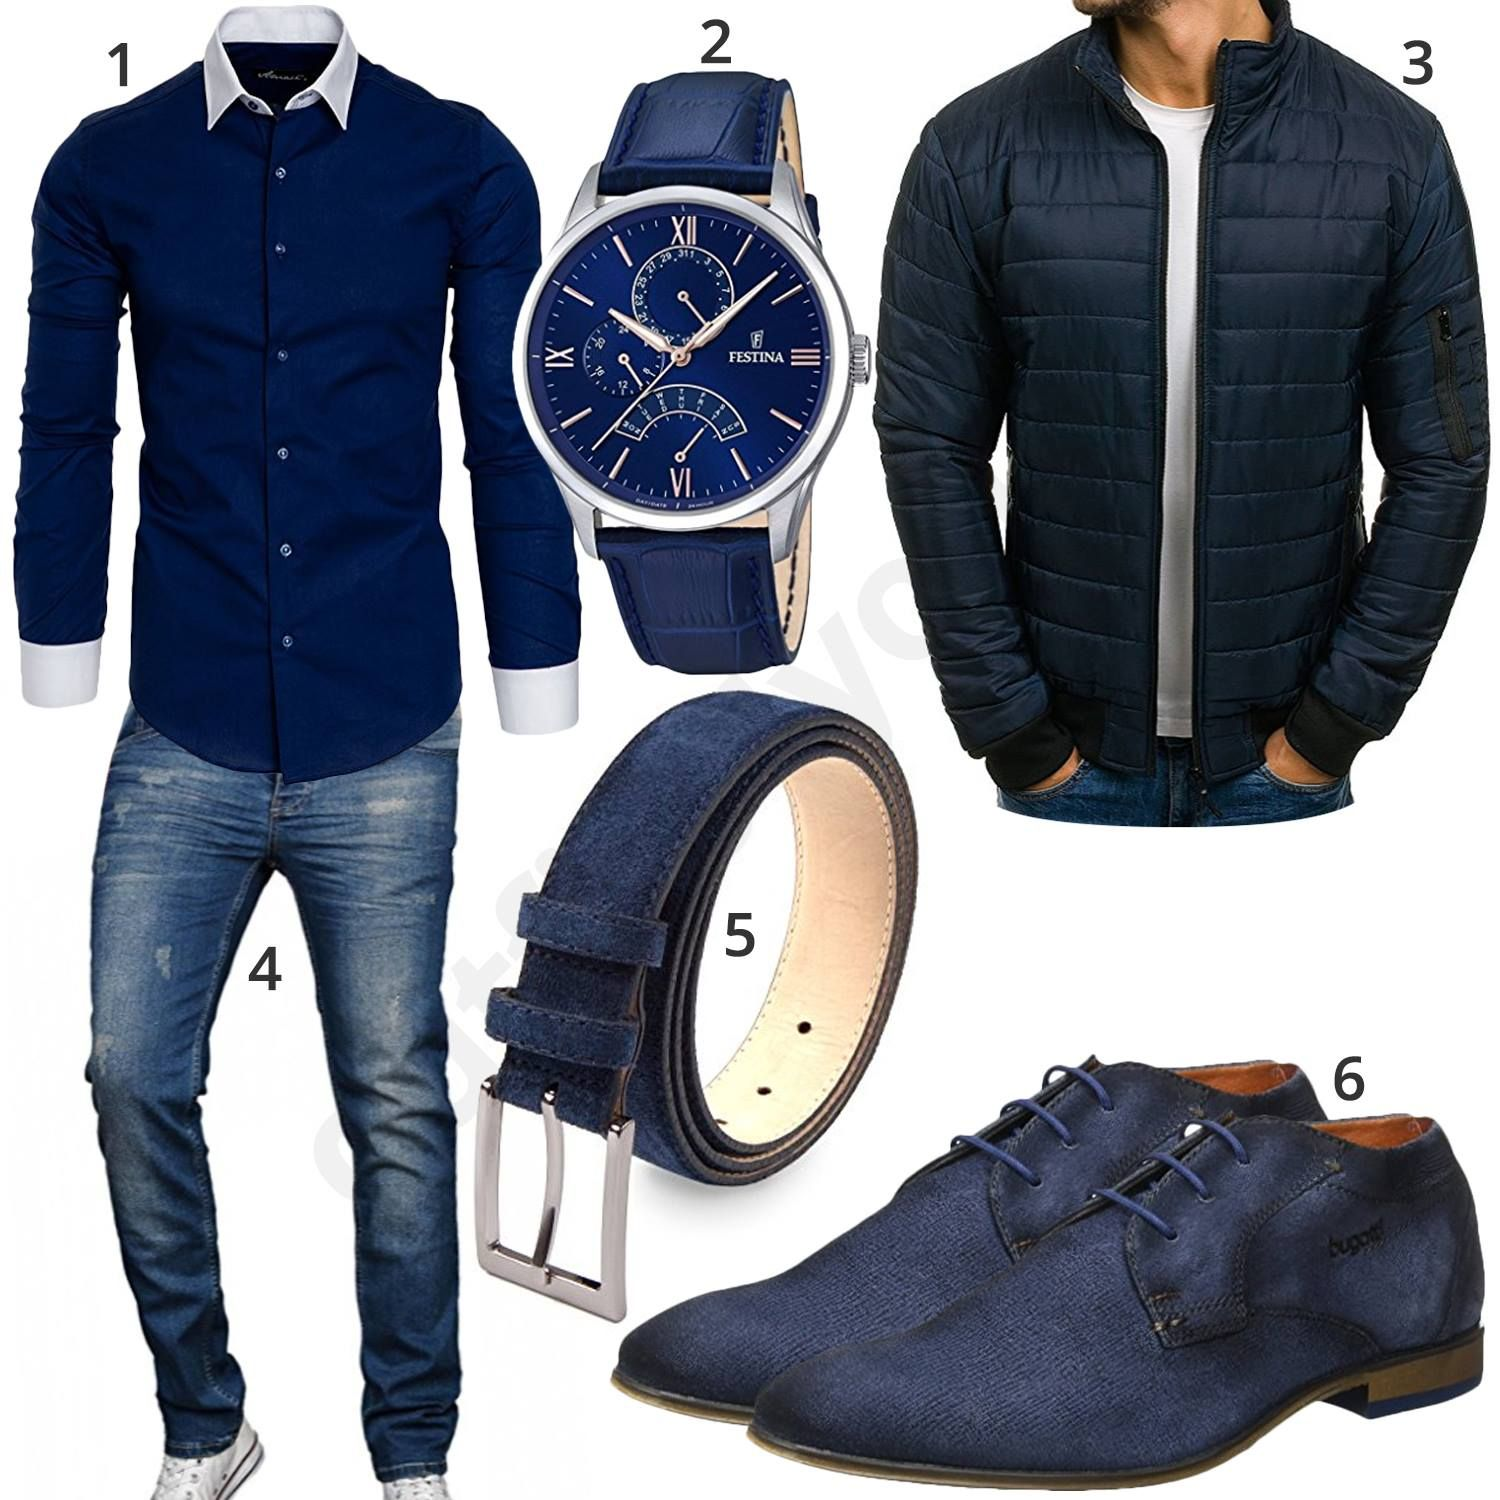 dunkelblaues business outfit mit hemd jeans und uhr pinterest business outfit m nner mode. Black Bedroom Furniture Sets. Home Design Ideas